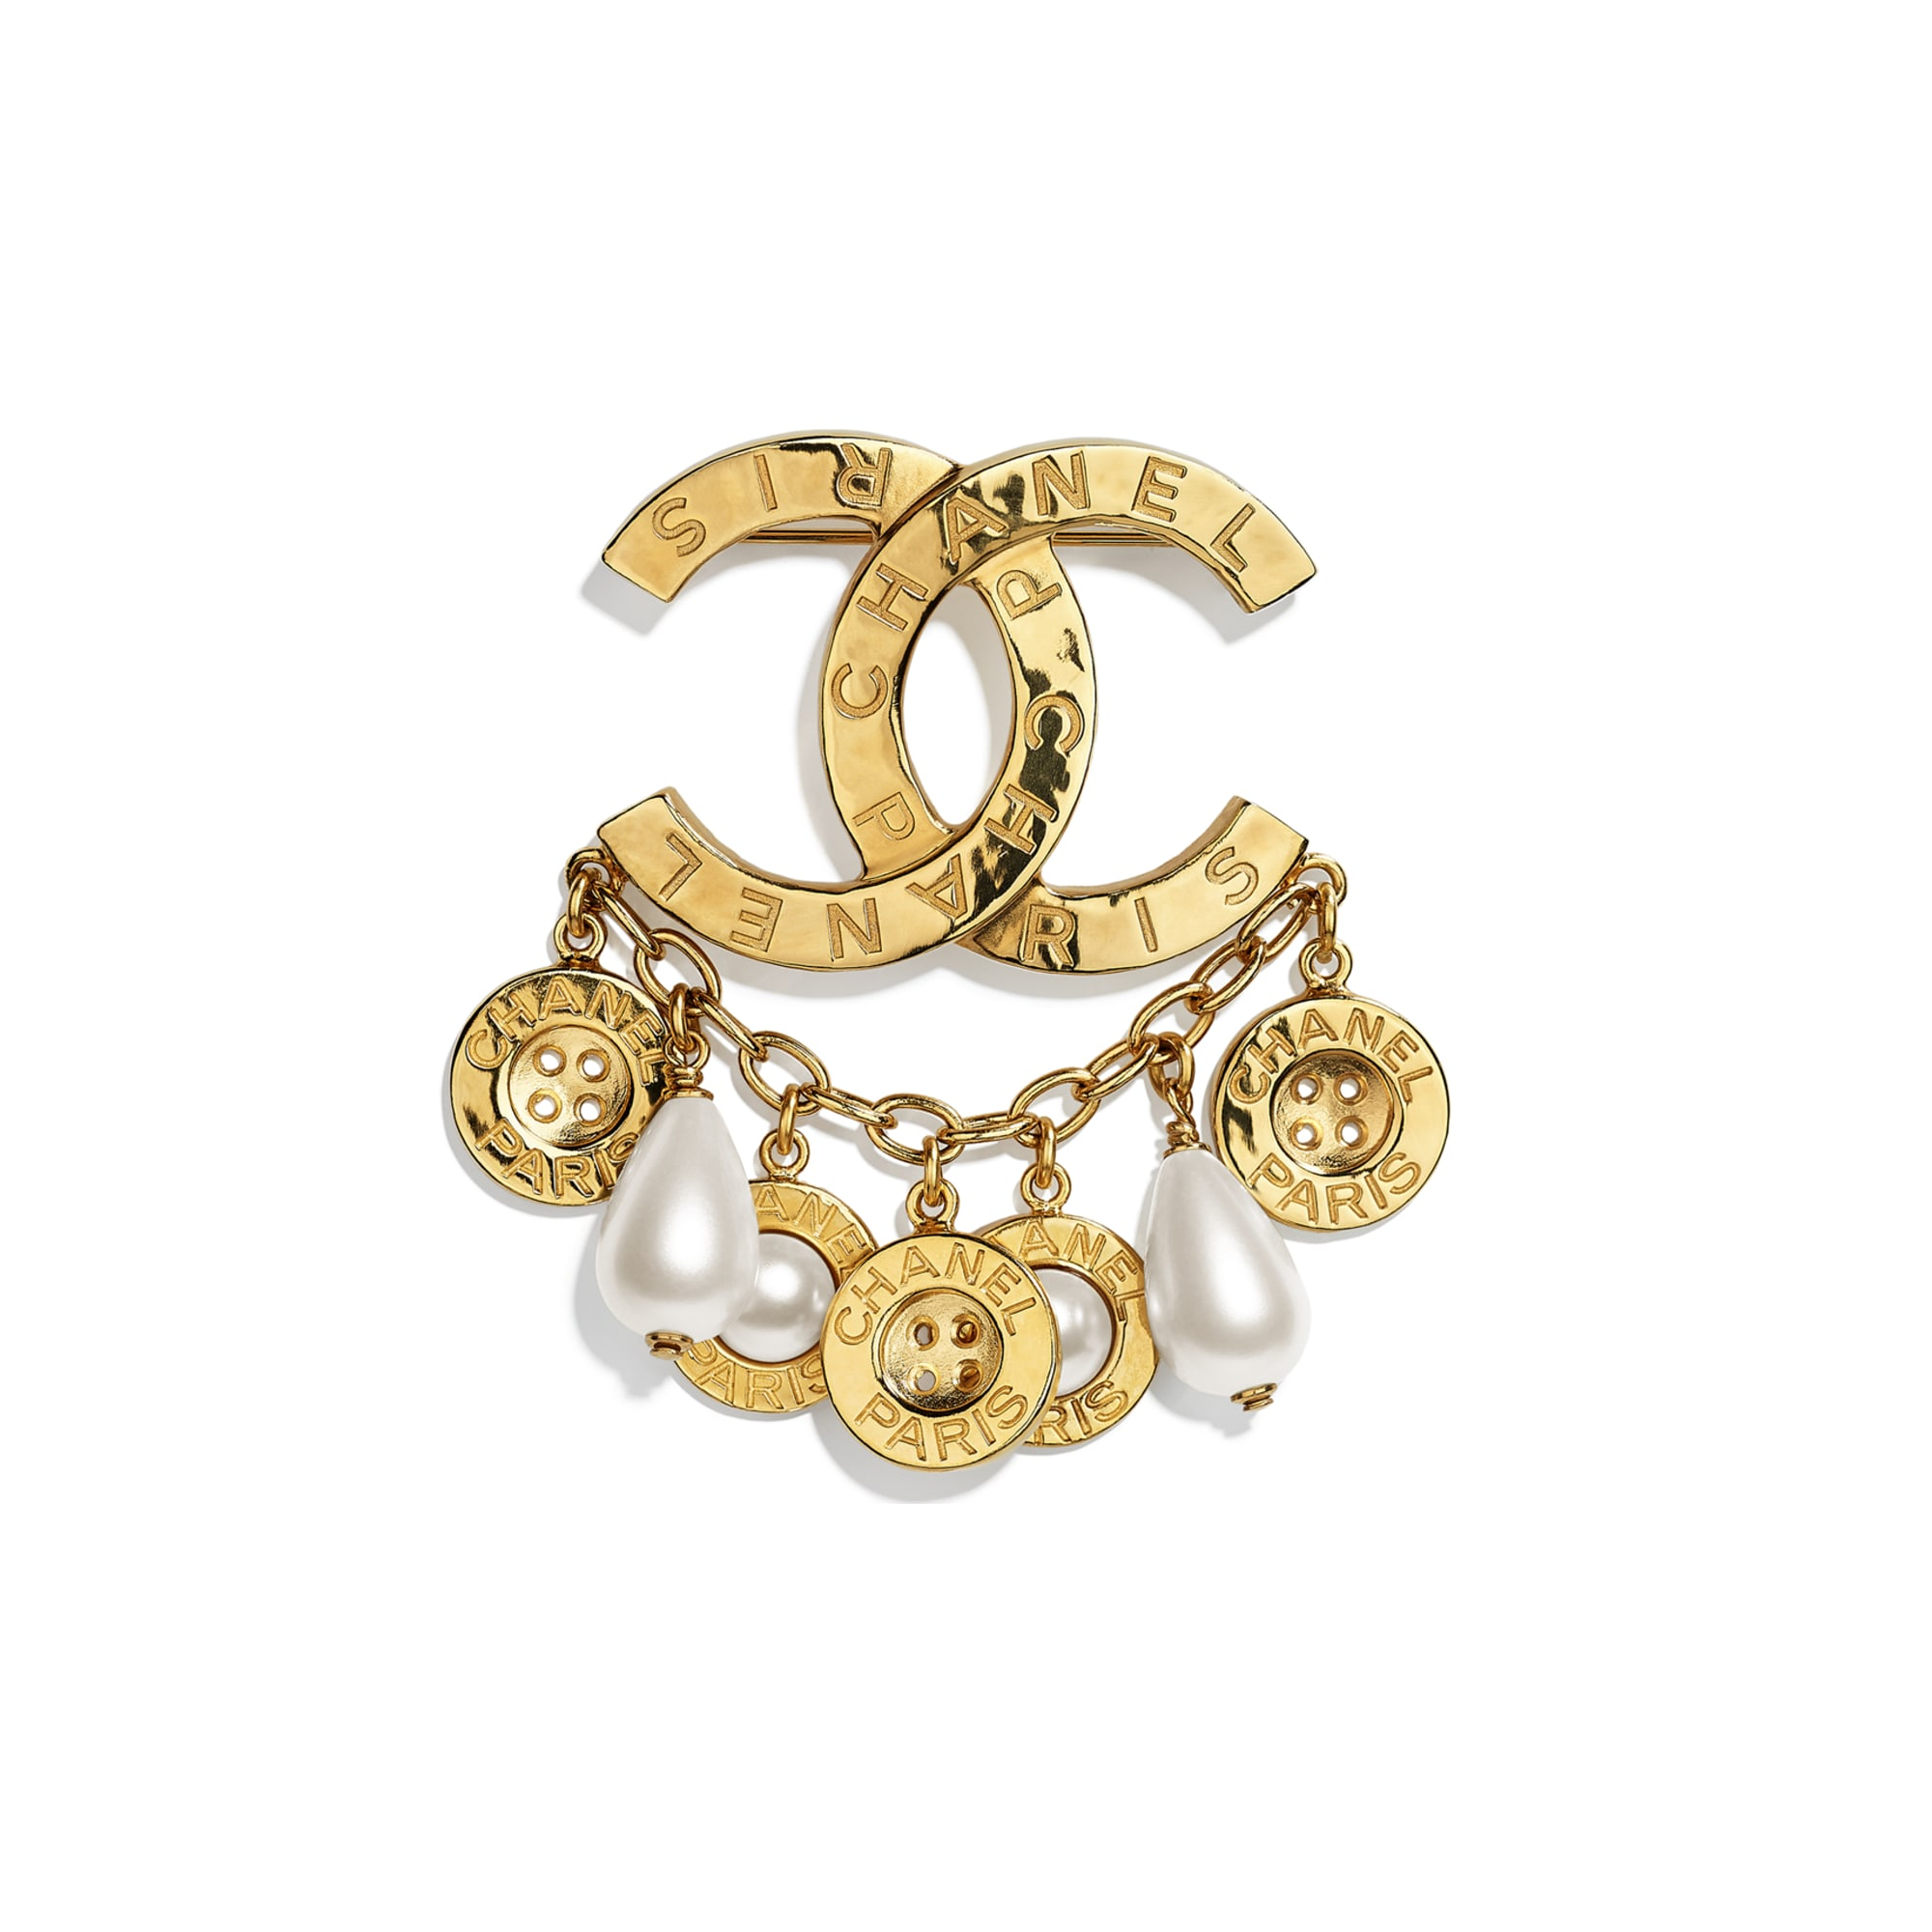 Brooch - Gold & Pearly White - Metal, Glass Pearls & Imitation Pearls - CHANEL - Default view - see standard sized version